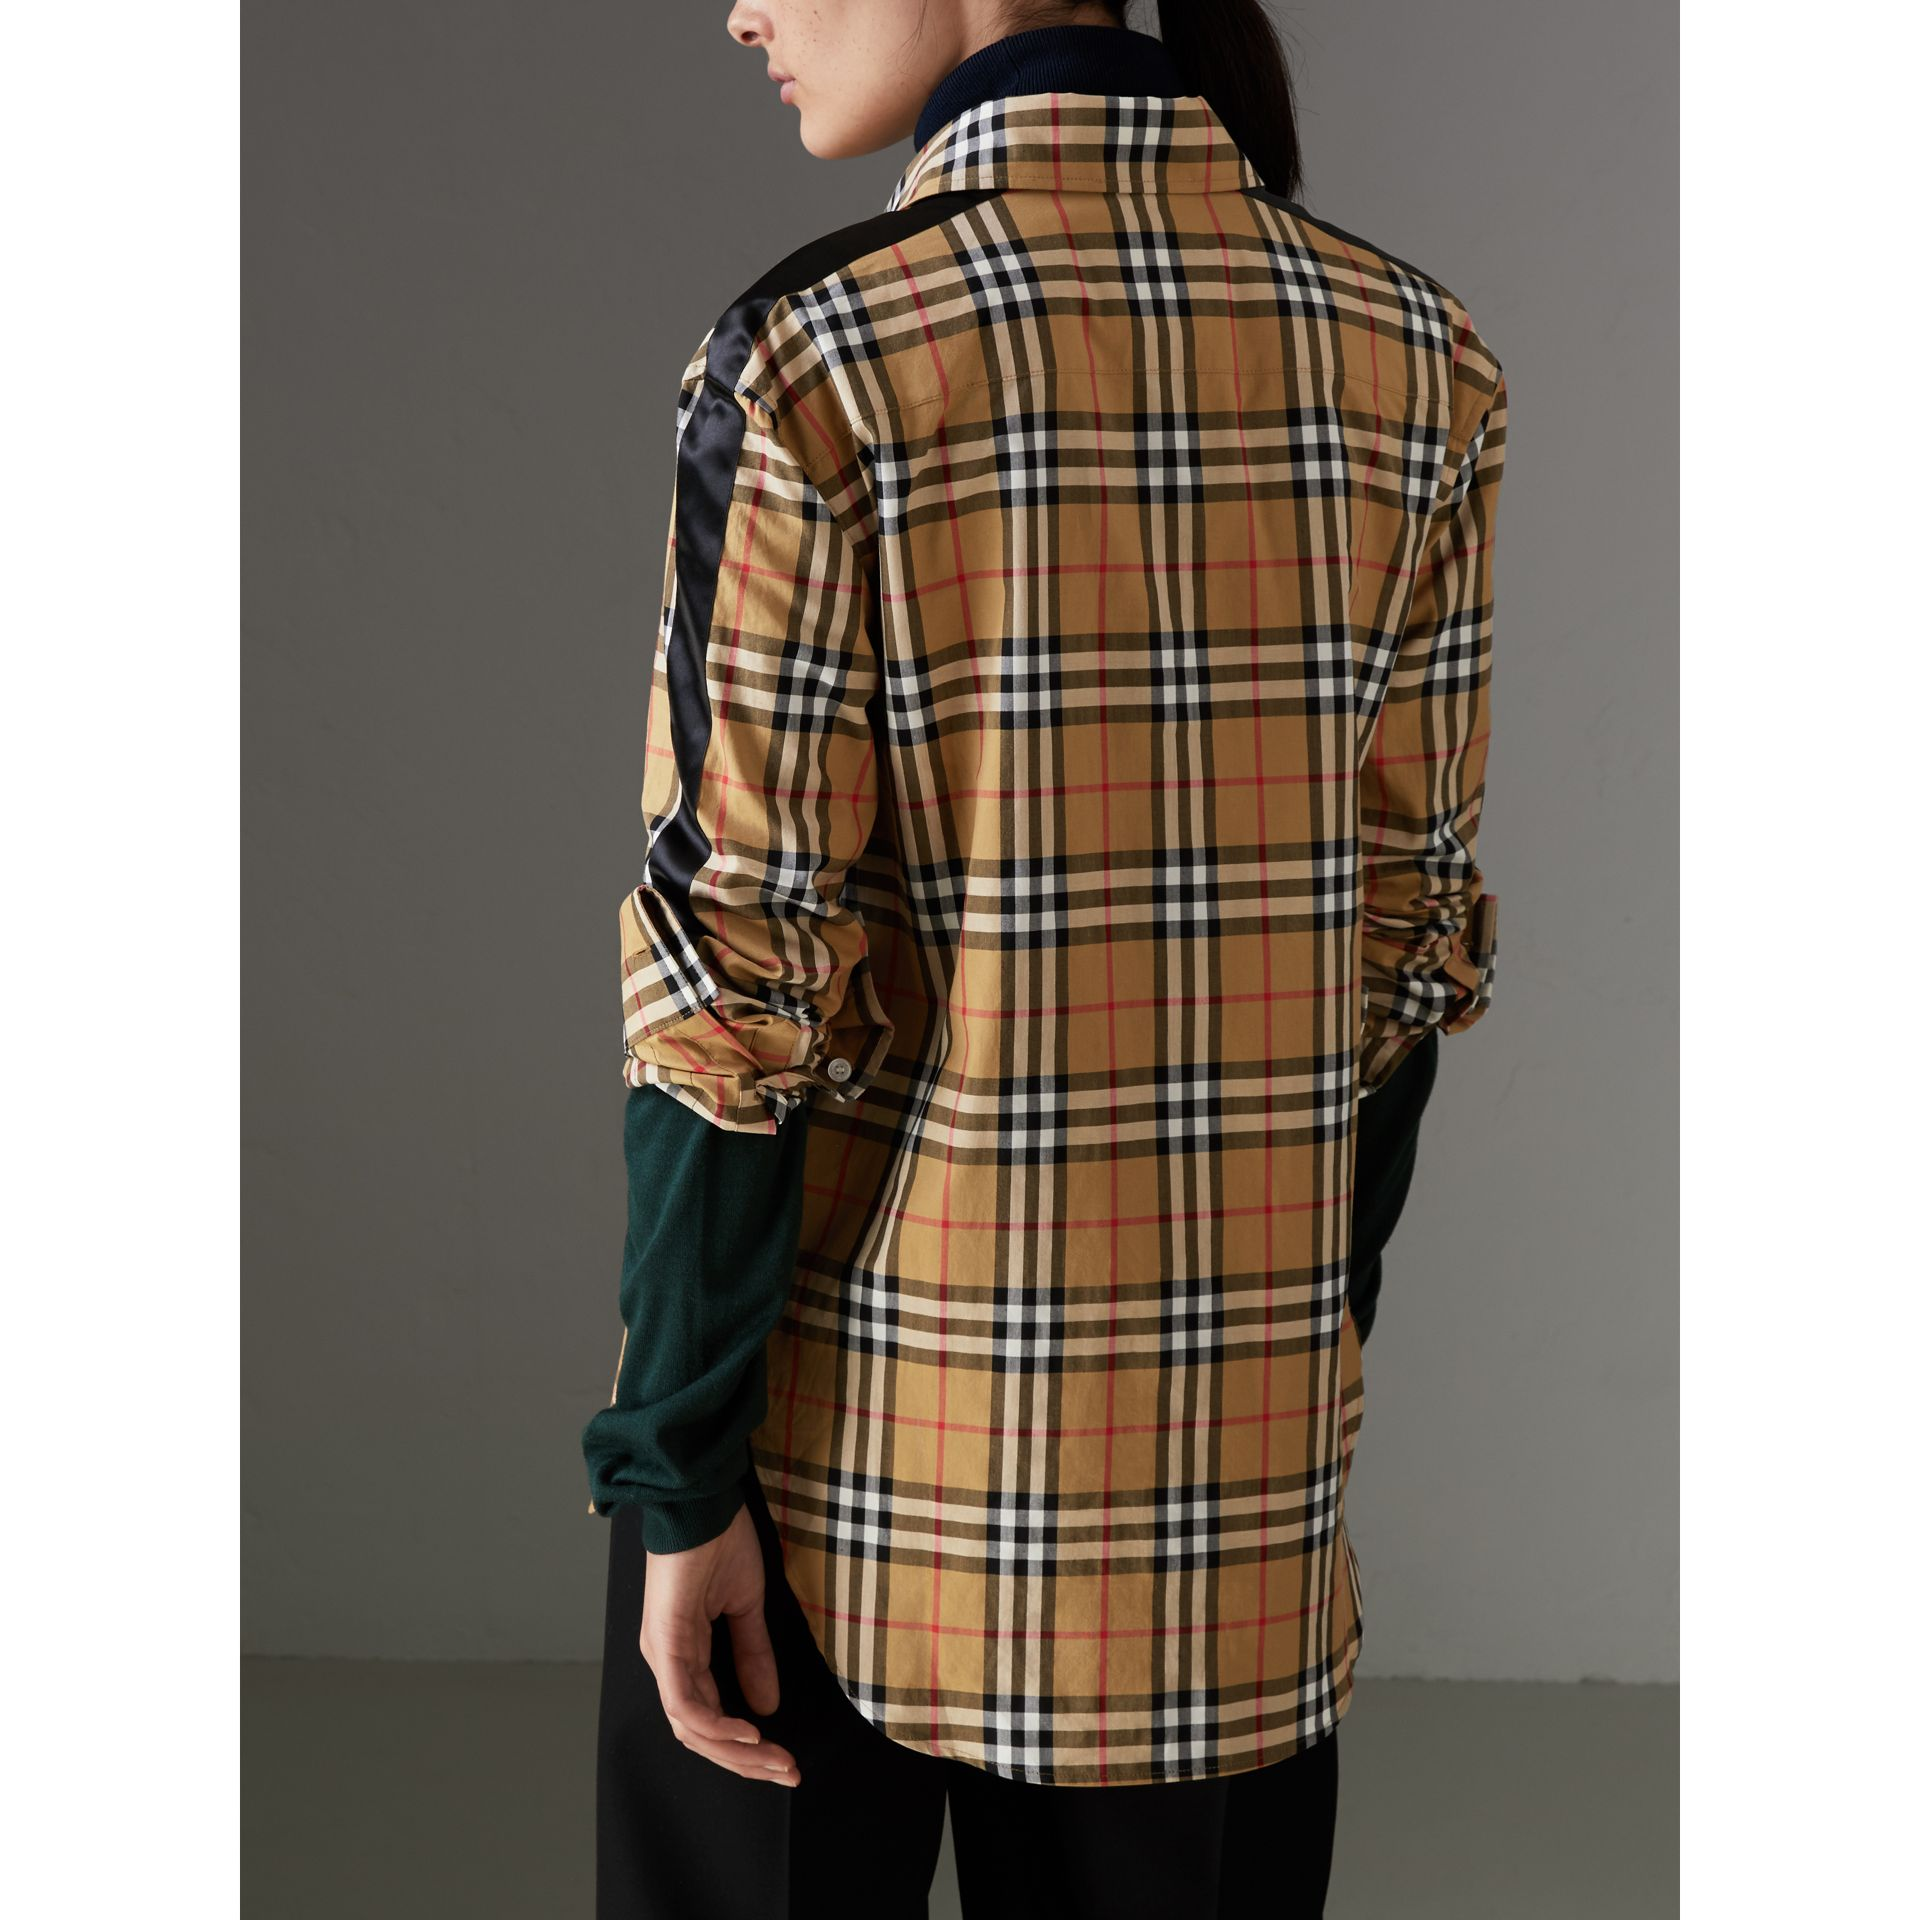 Stripe Detail Vintage Check Cotton Shirt in Antique Yellow - Women | Burberry Singapore - gallery image 2